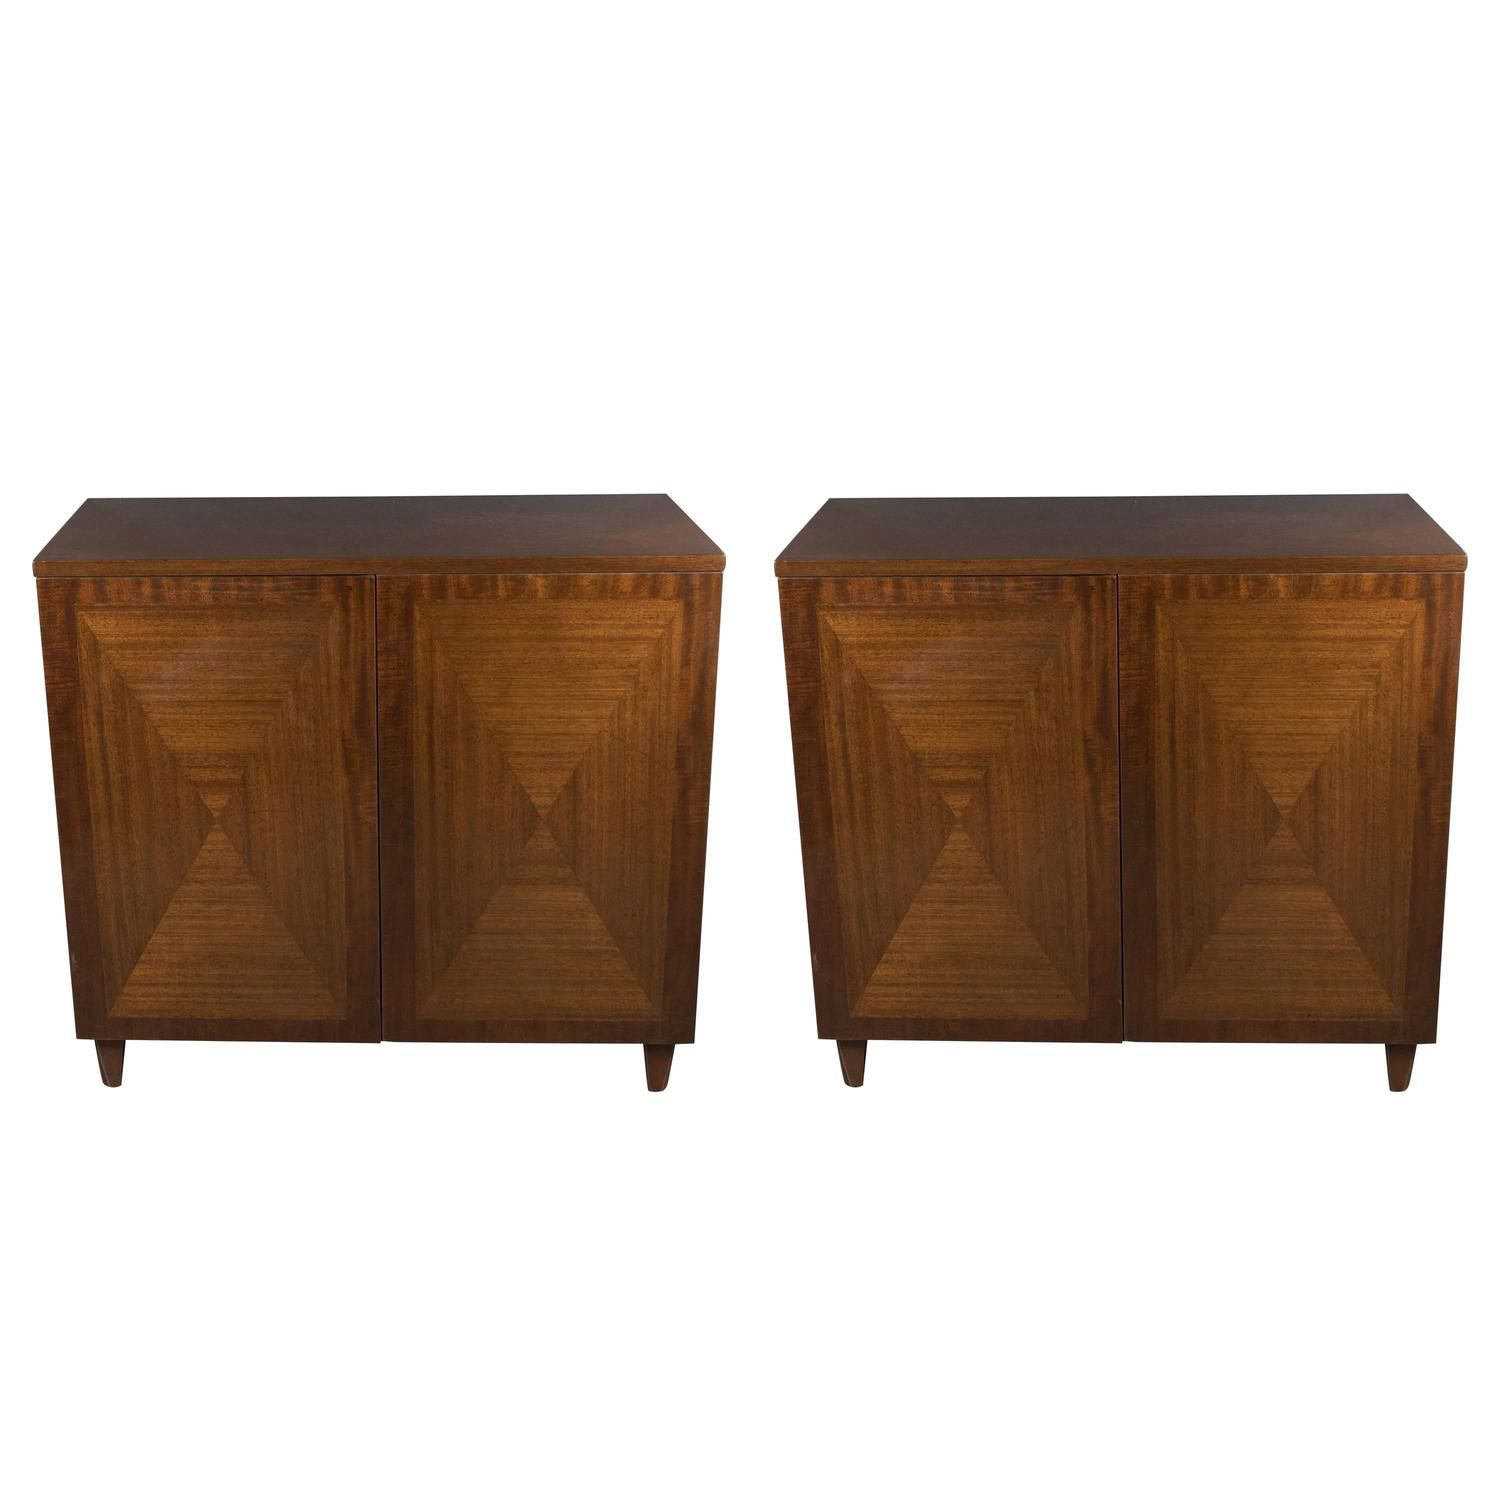 Pair Of Parqueted Book Matched Walnut Cabinets By John Stuart Inc, Circa  1960s